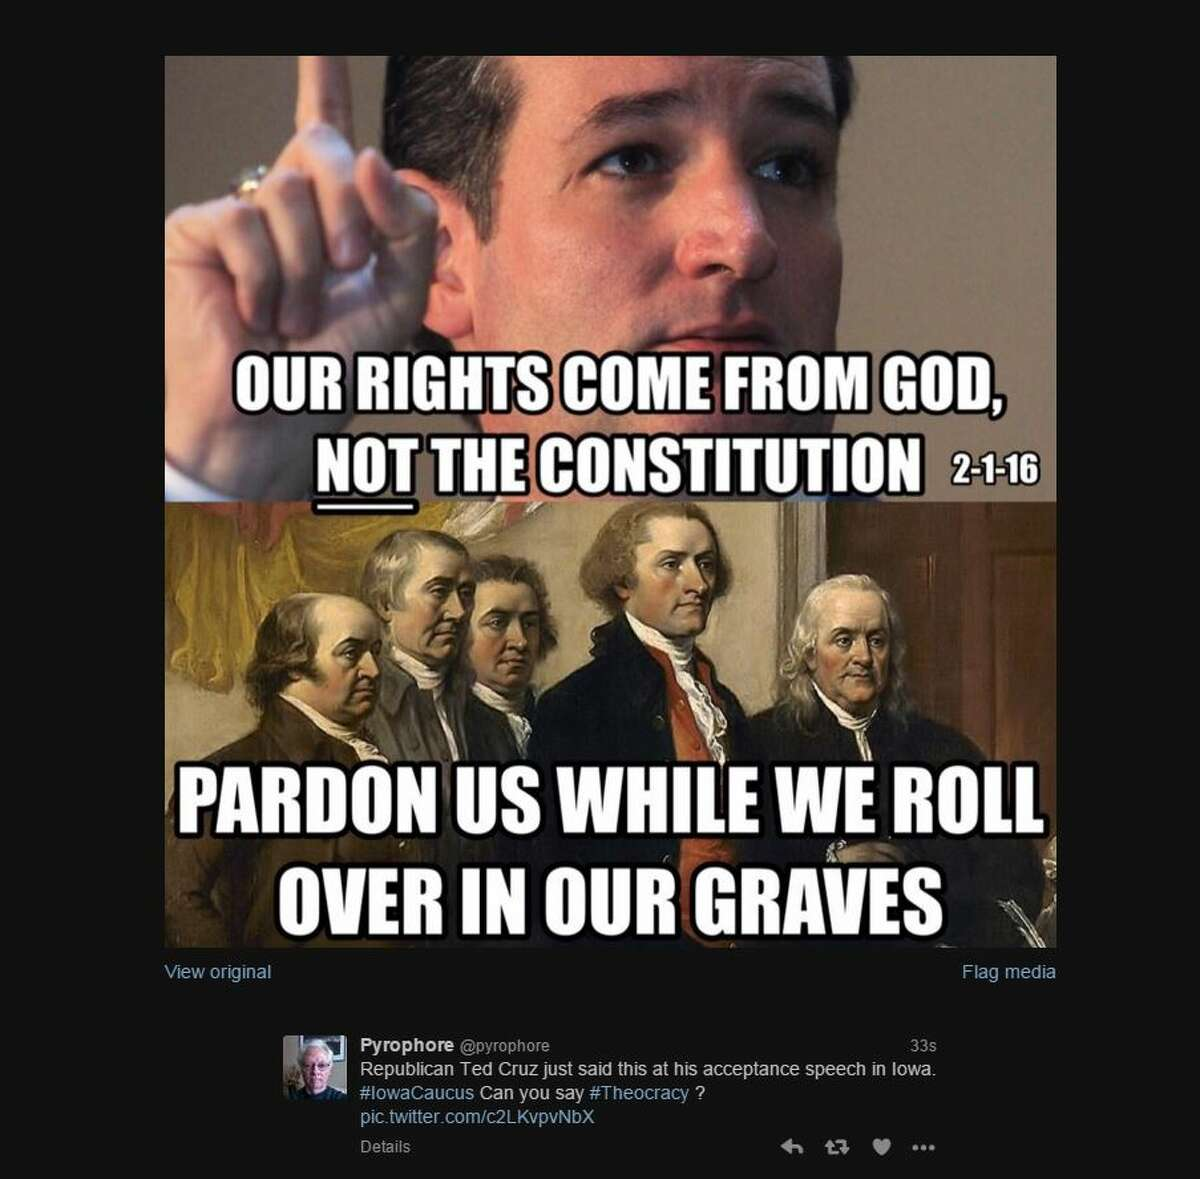 @pyrophore Republican Ted Cruz just said this at his acceptance speech in Iowa. #IowaCaucus Can you say #Theocracy? pic.twitter.com/c2LKvpvNbX